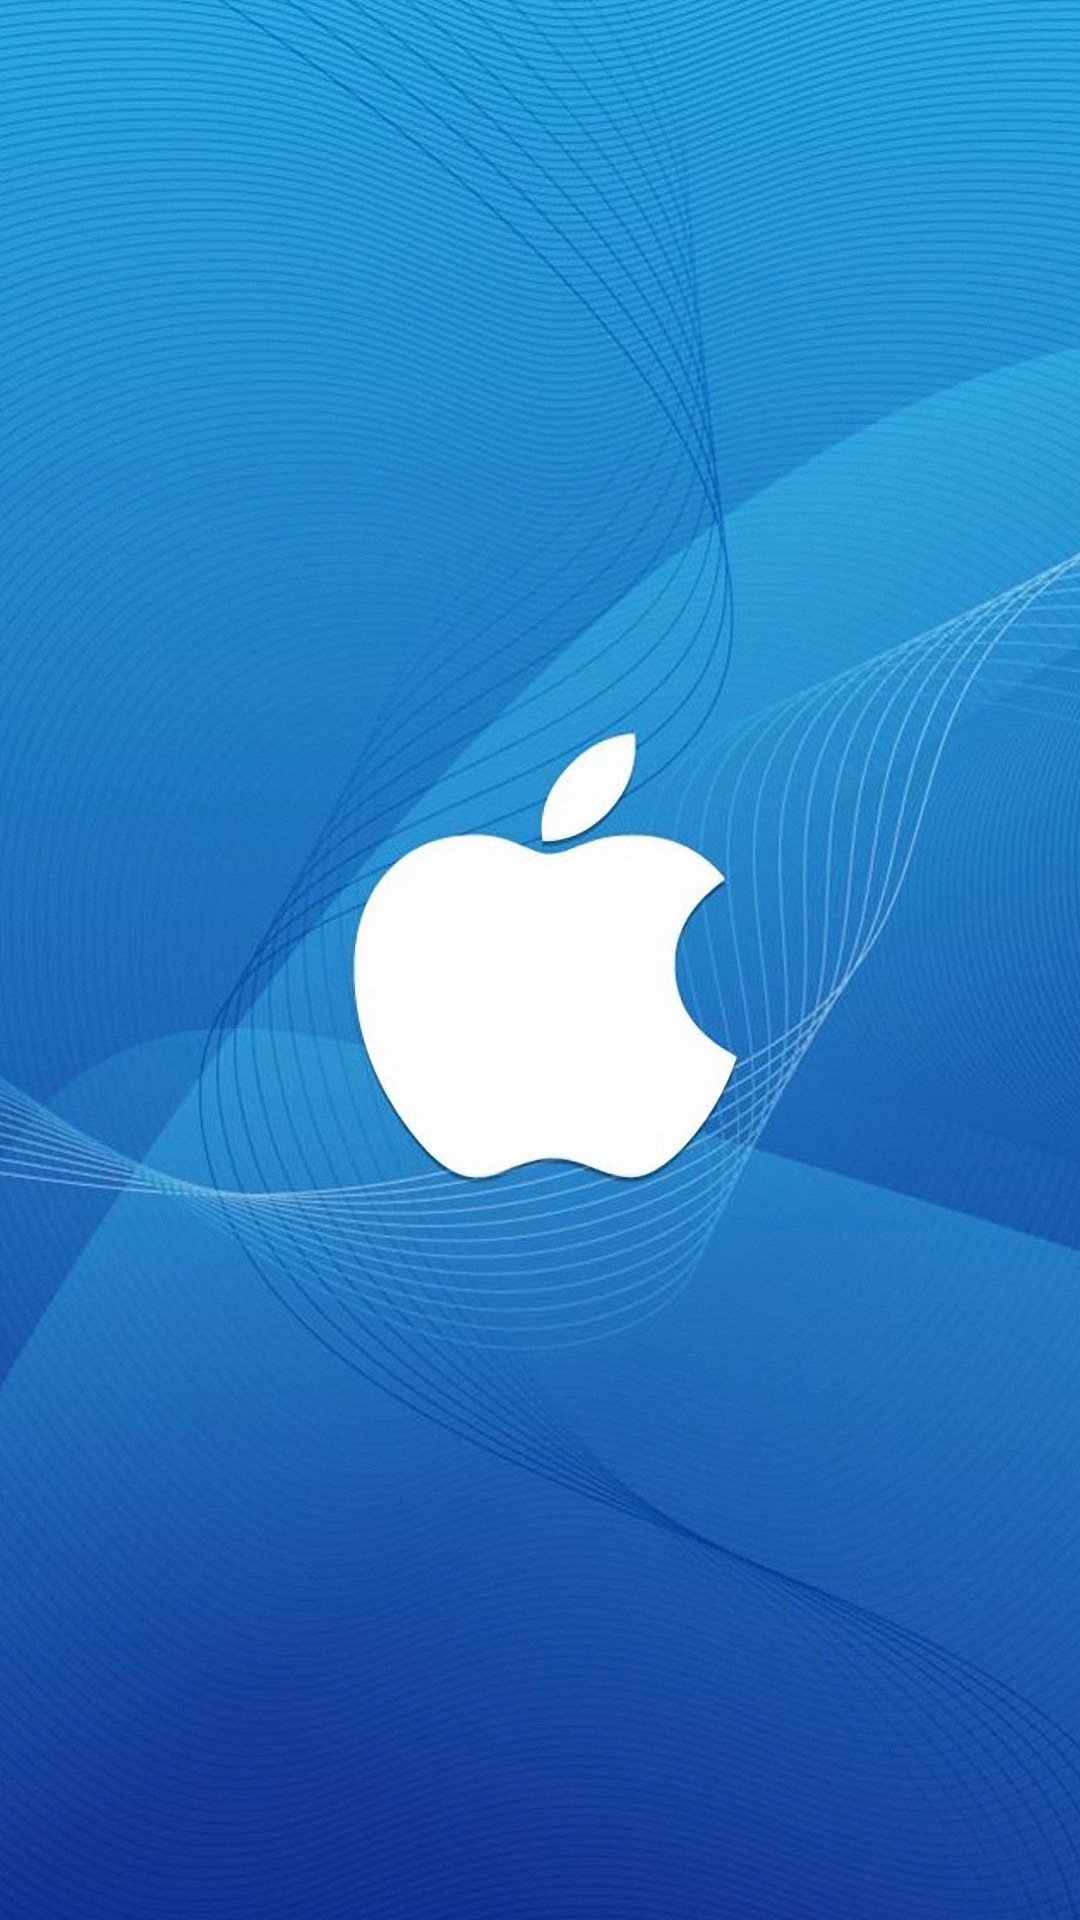 Inspirational Wallpapers With Quotes High Resolution Apple Logo Hd Wallpaper For Iphone Pixelstalk Net